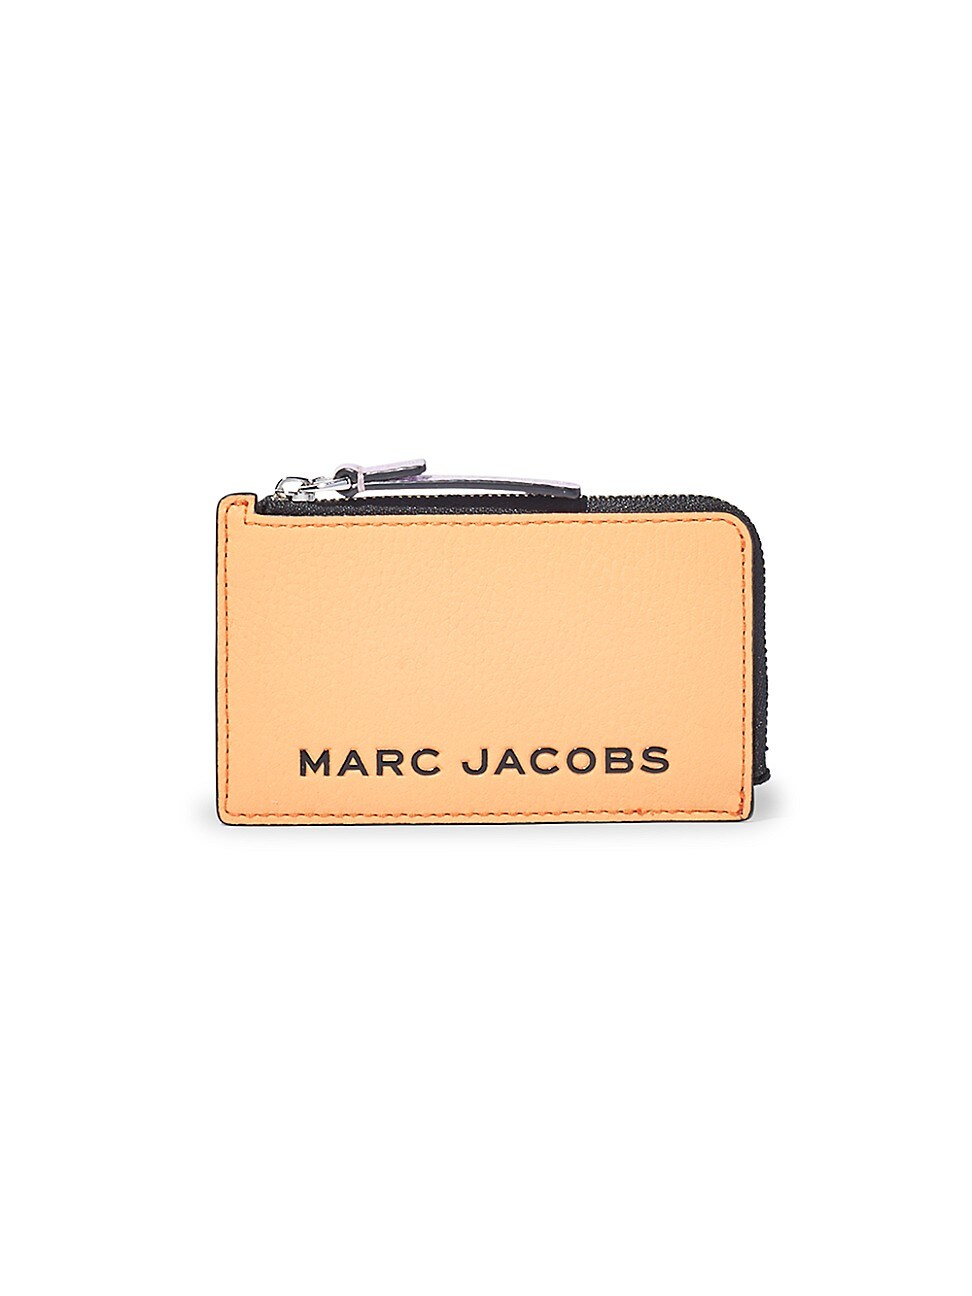 The Marc Jacobs Wallets WOMEN'S SMALL THE BOLD LEATHER WALLET